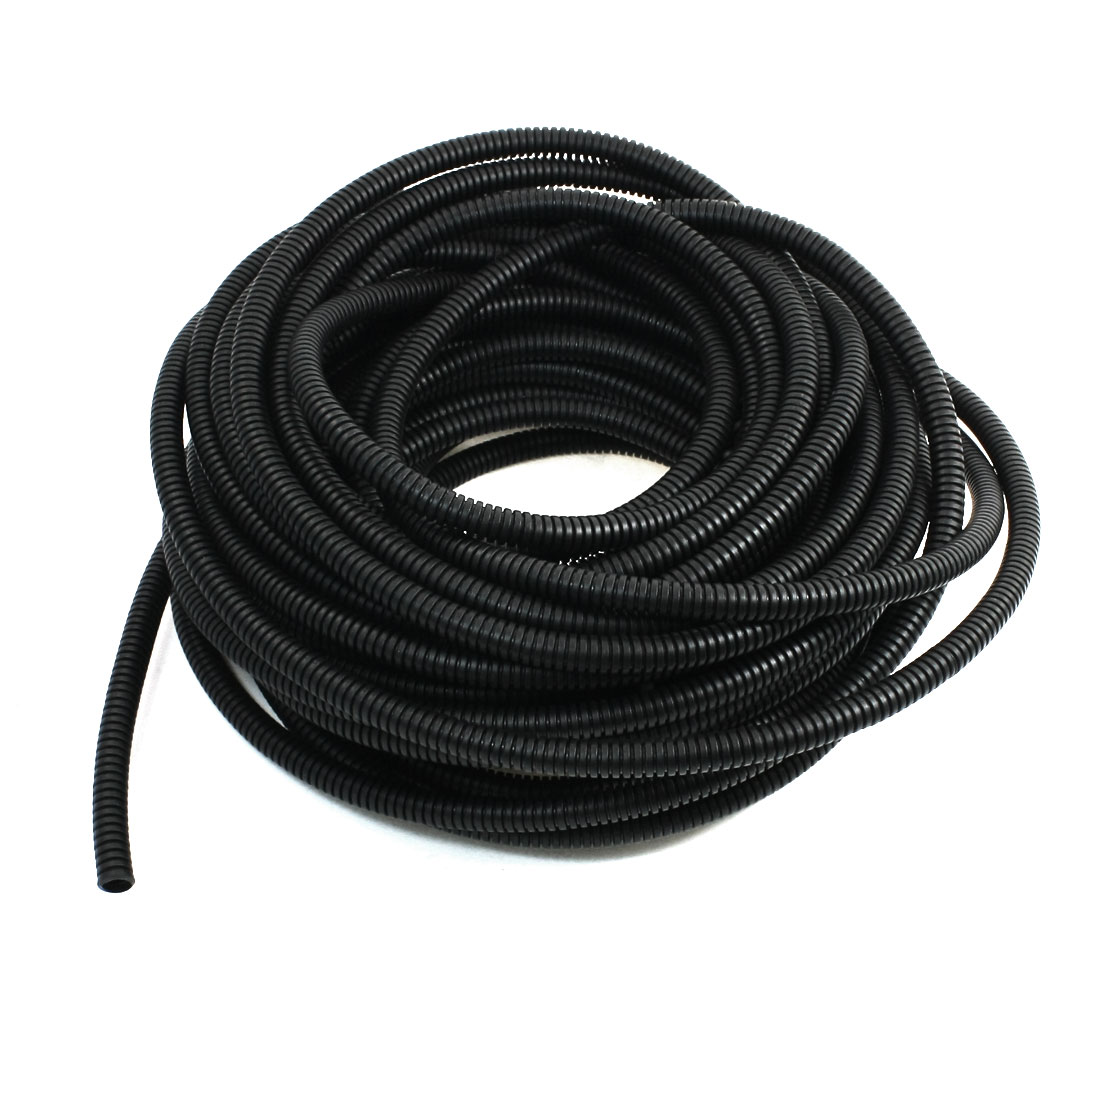 8mmx10mm-Split-Loom-Wire-Hose-Cover-Conduit-Corrugated-Tube-65-6Ft